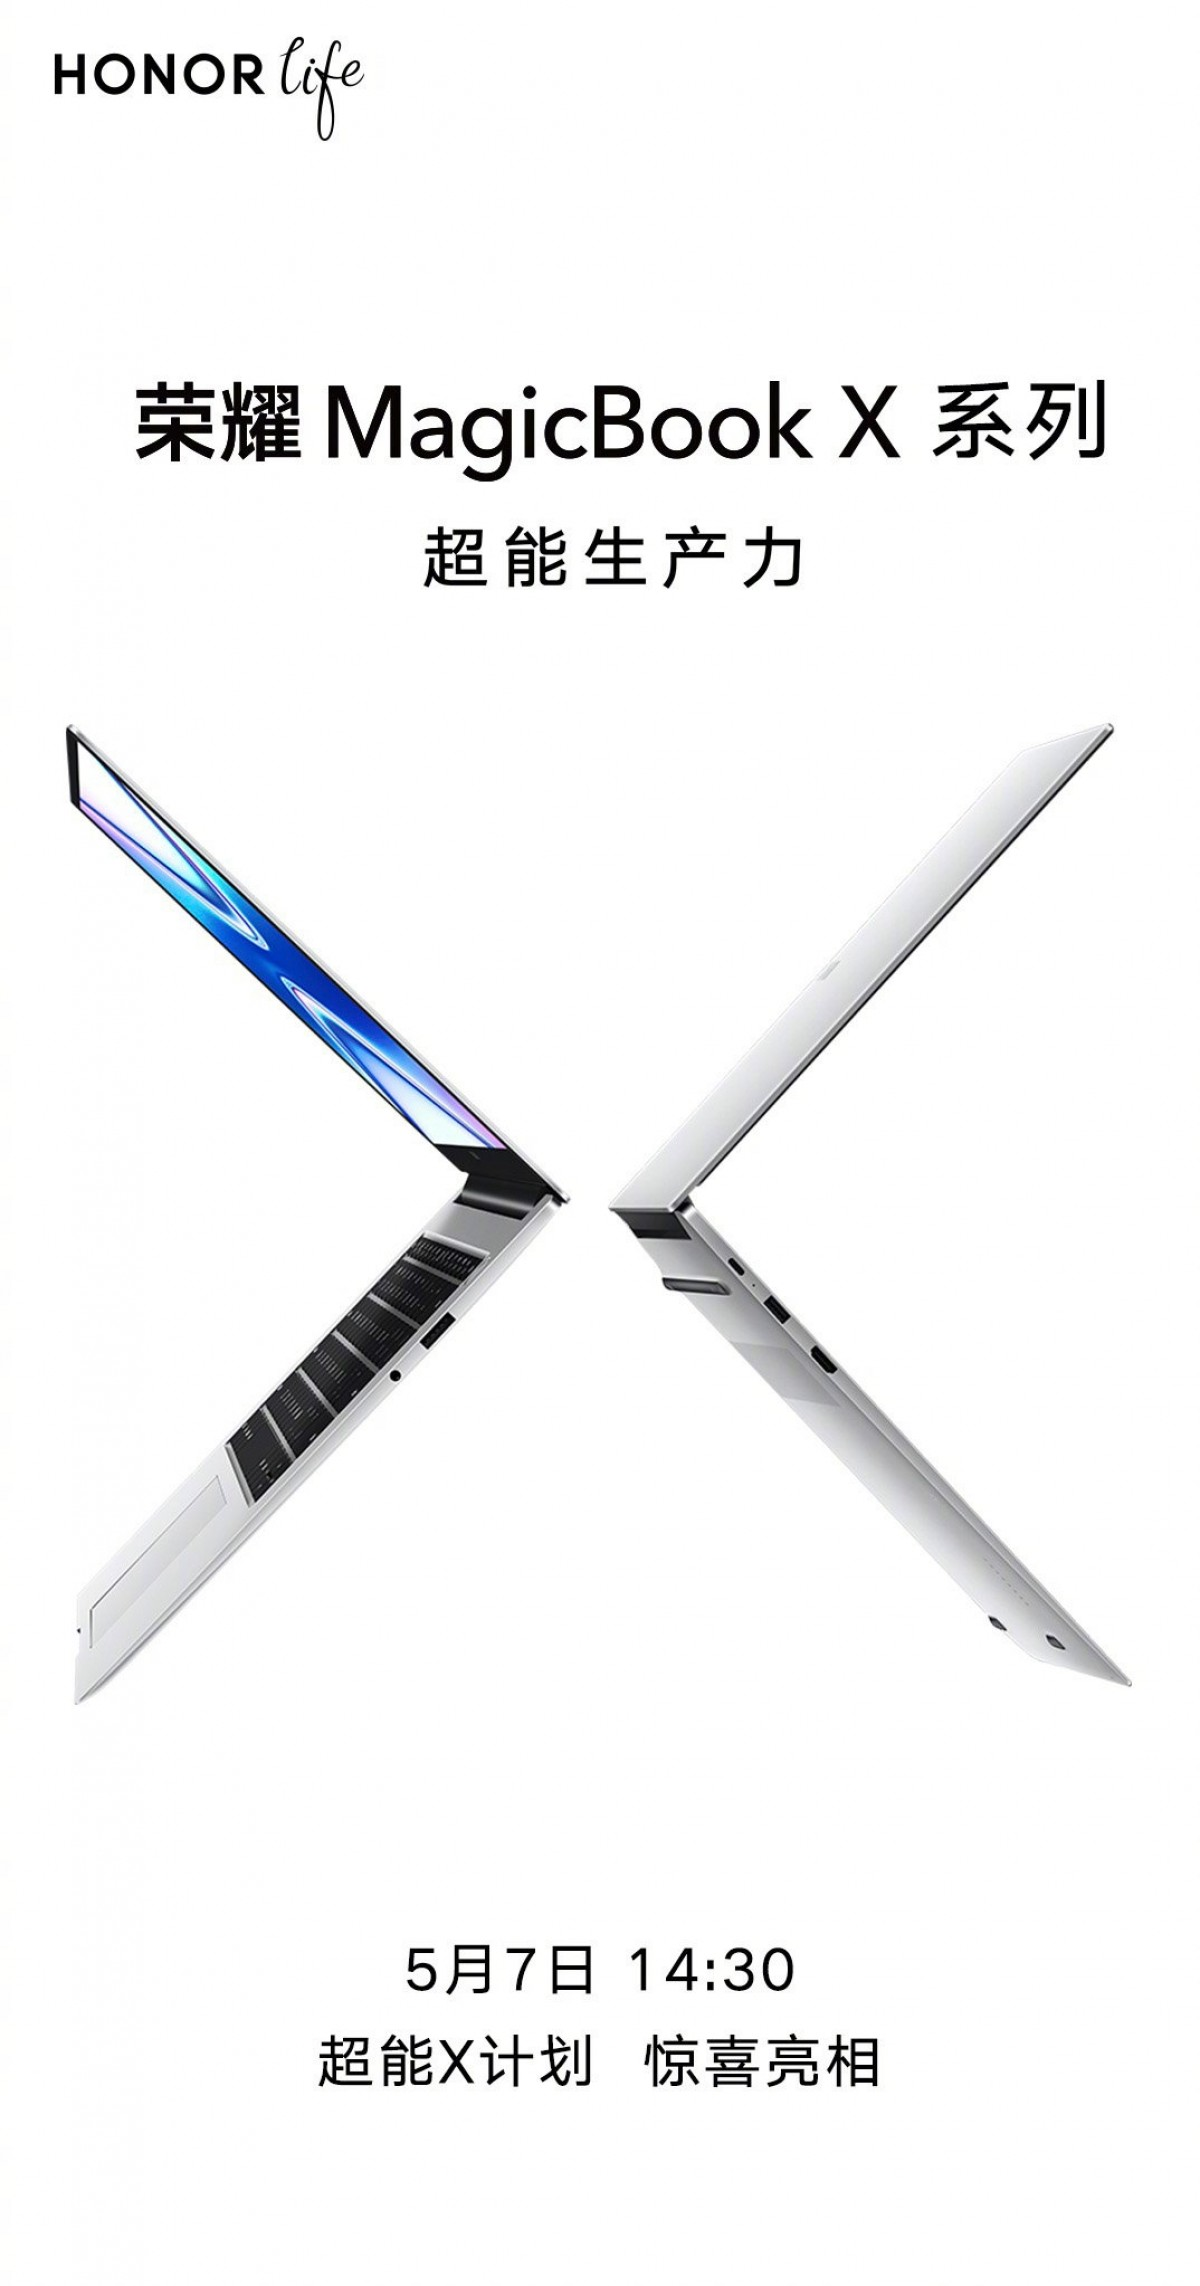 Honor schedules to launch the MagicBook X series in China tomorrow